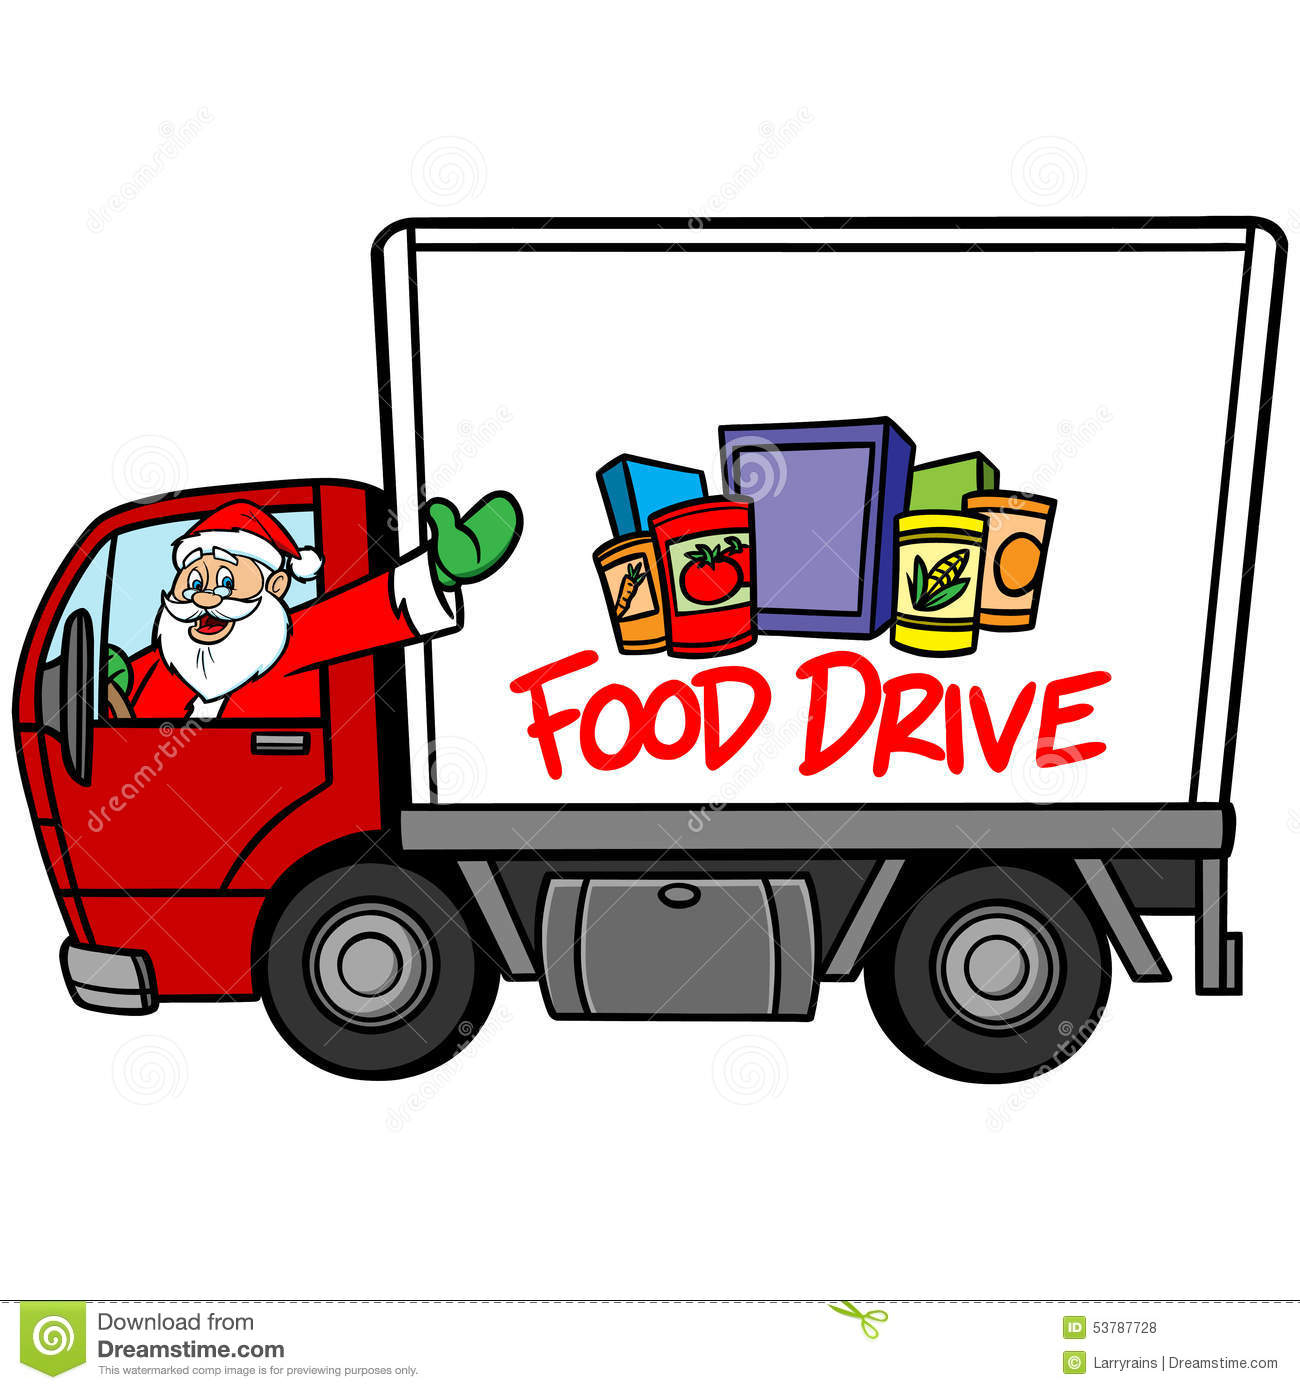 christmas food drive - photo #48